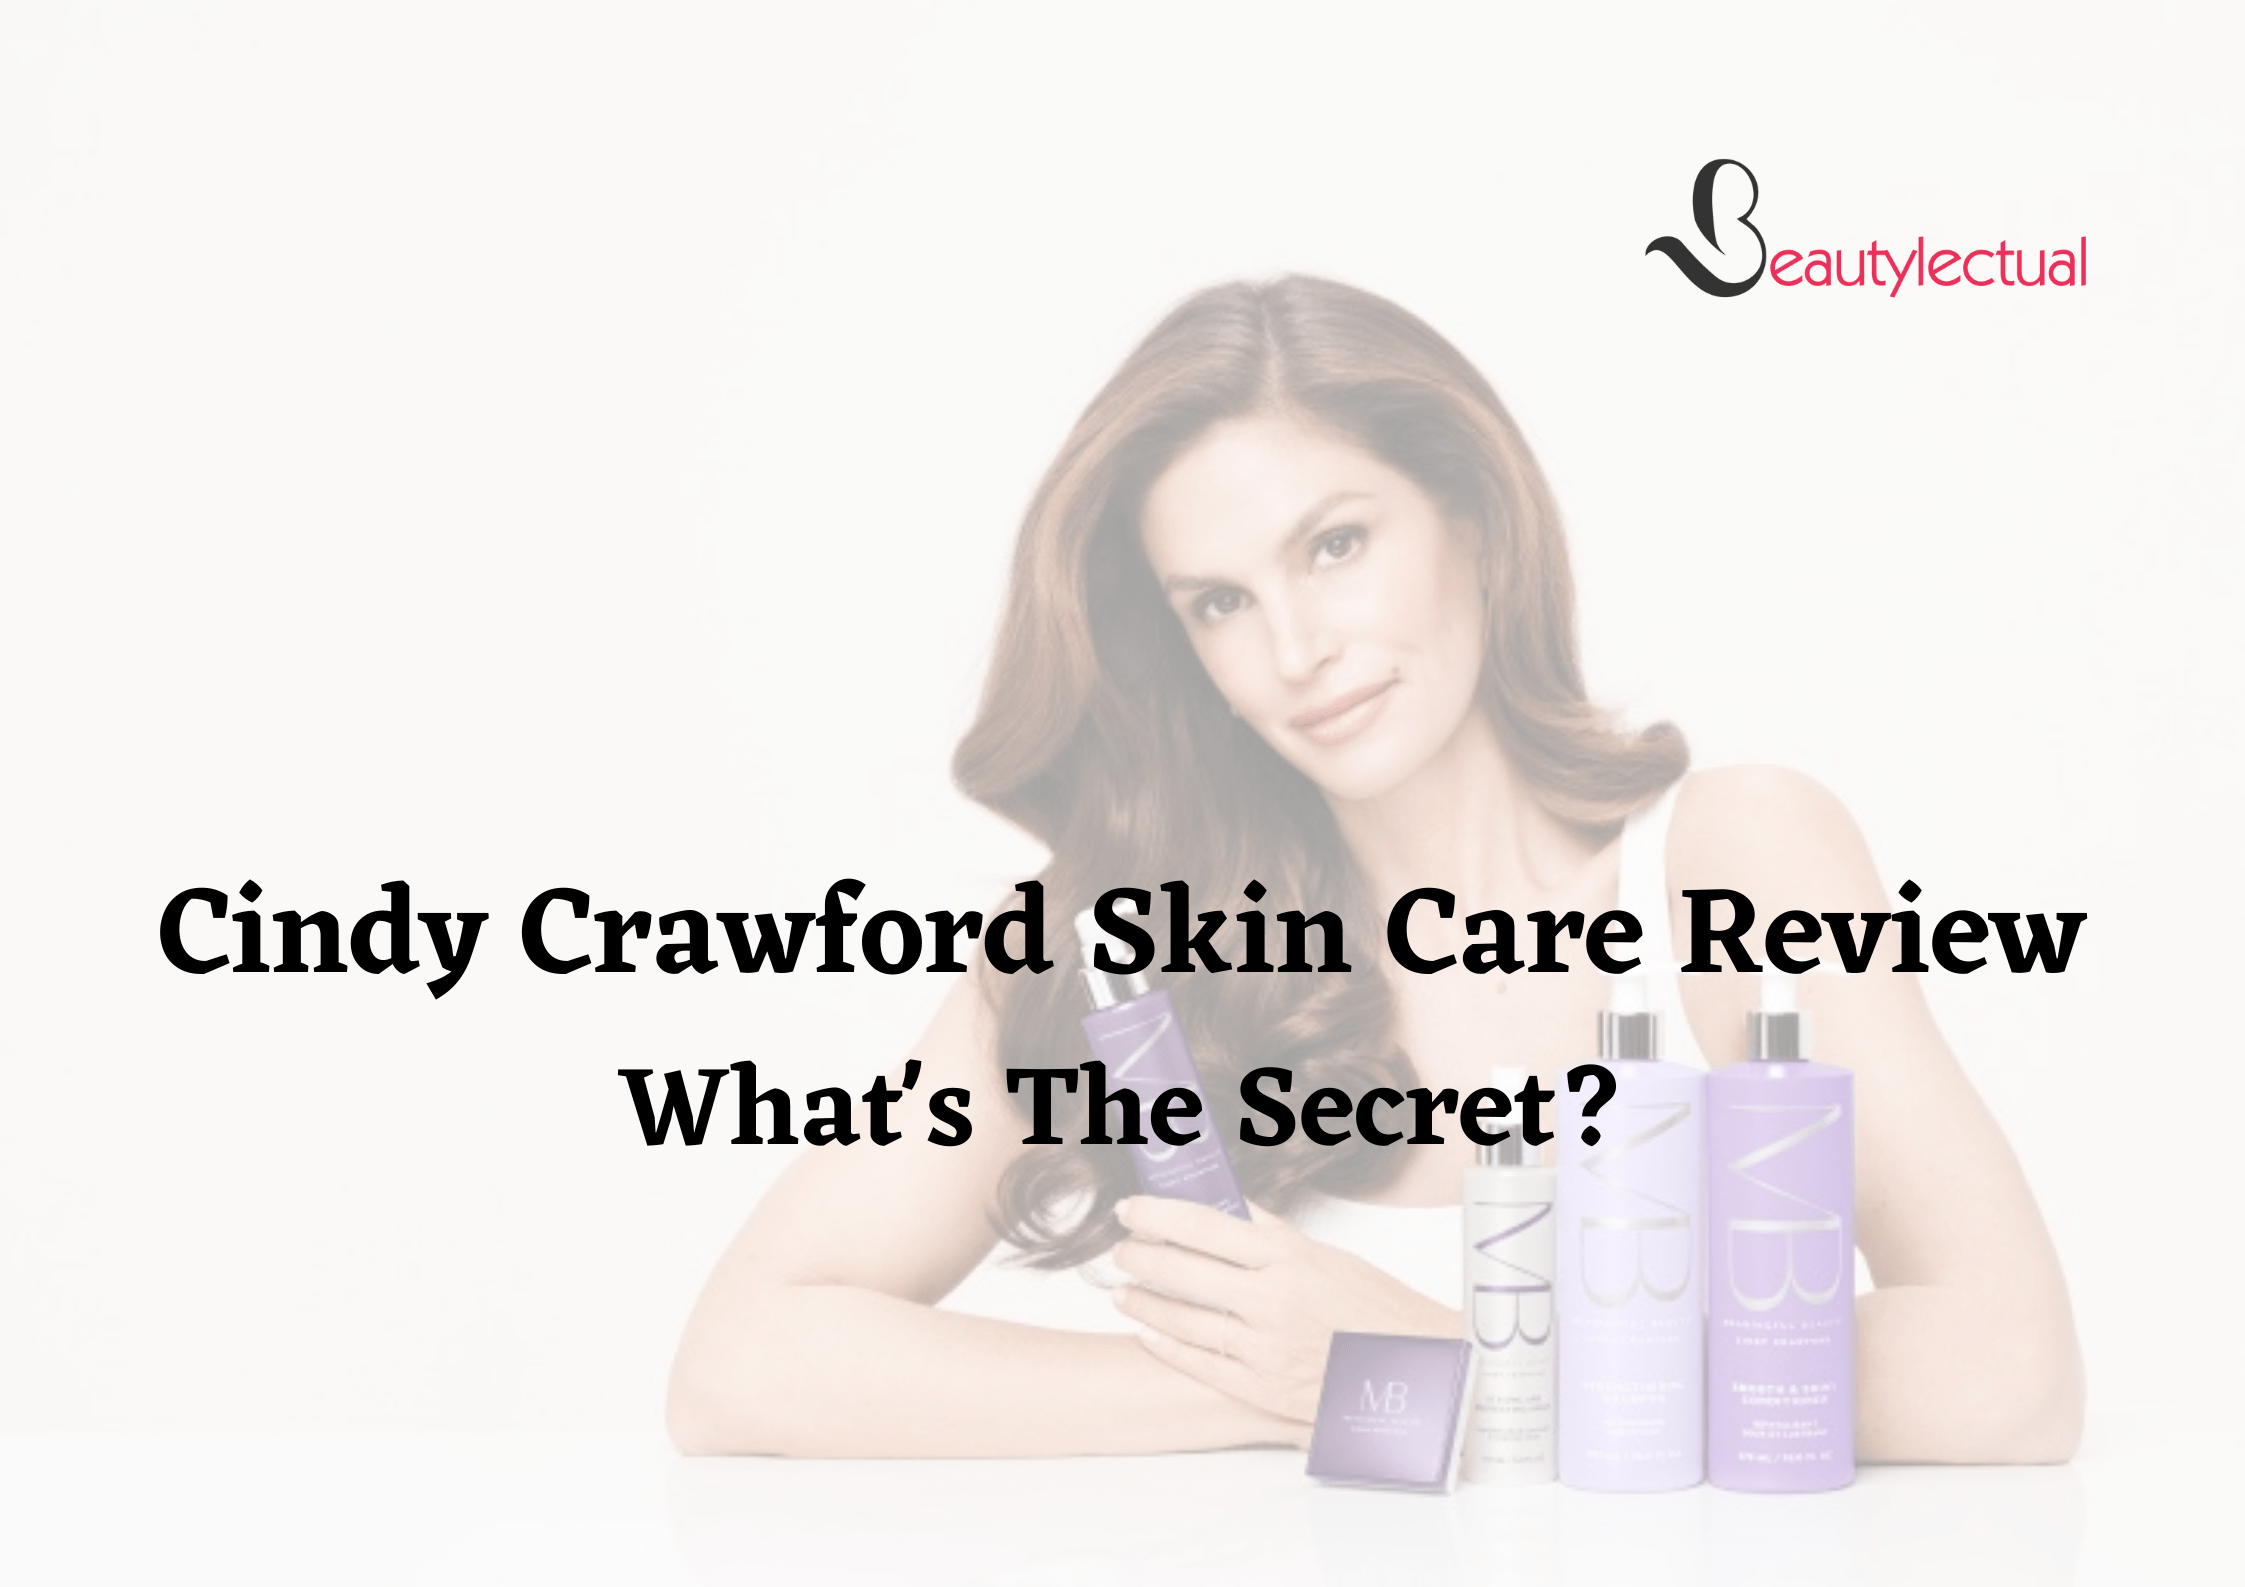 Cindy Crawford Skin Care Review